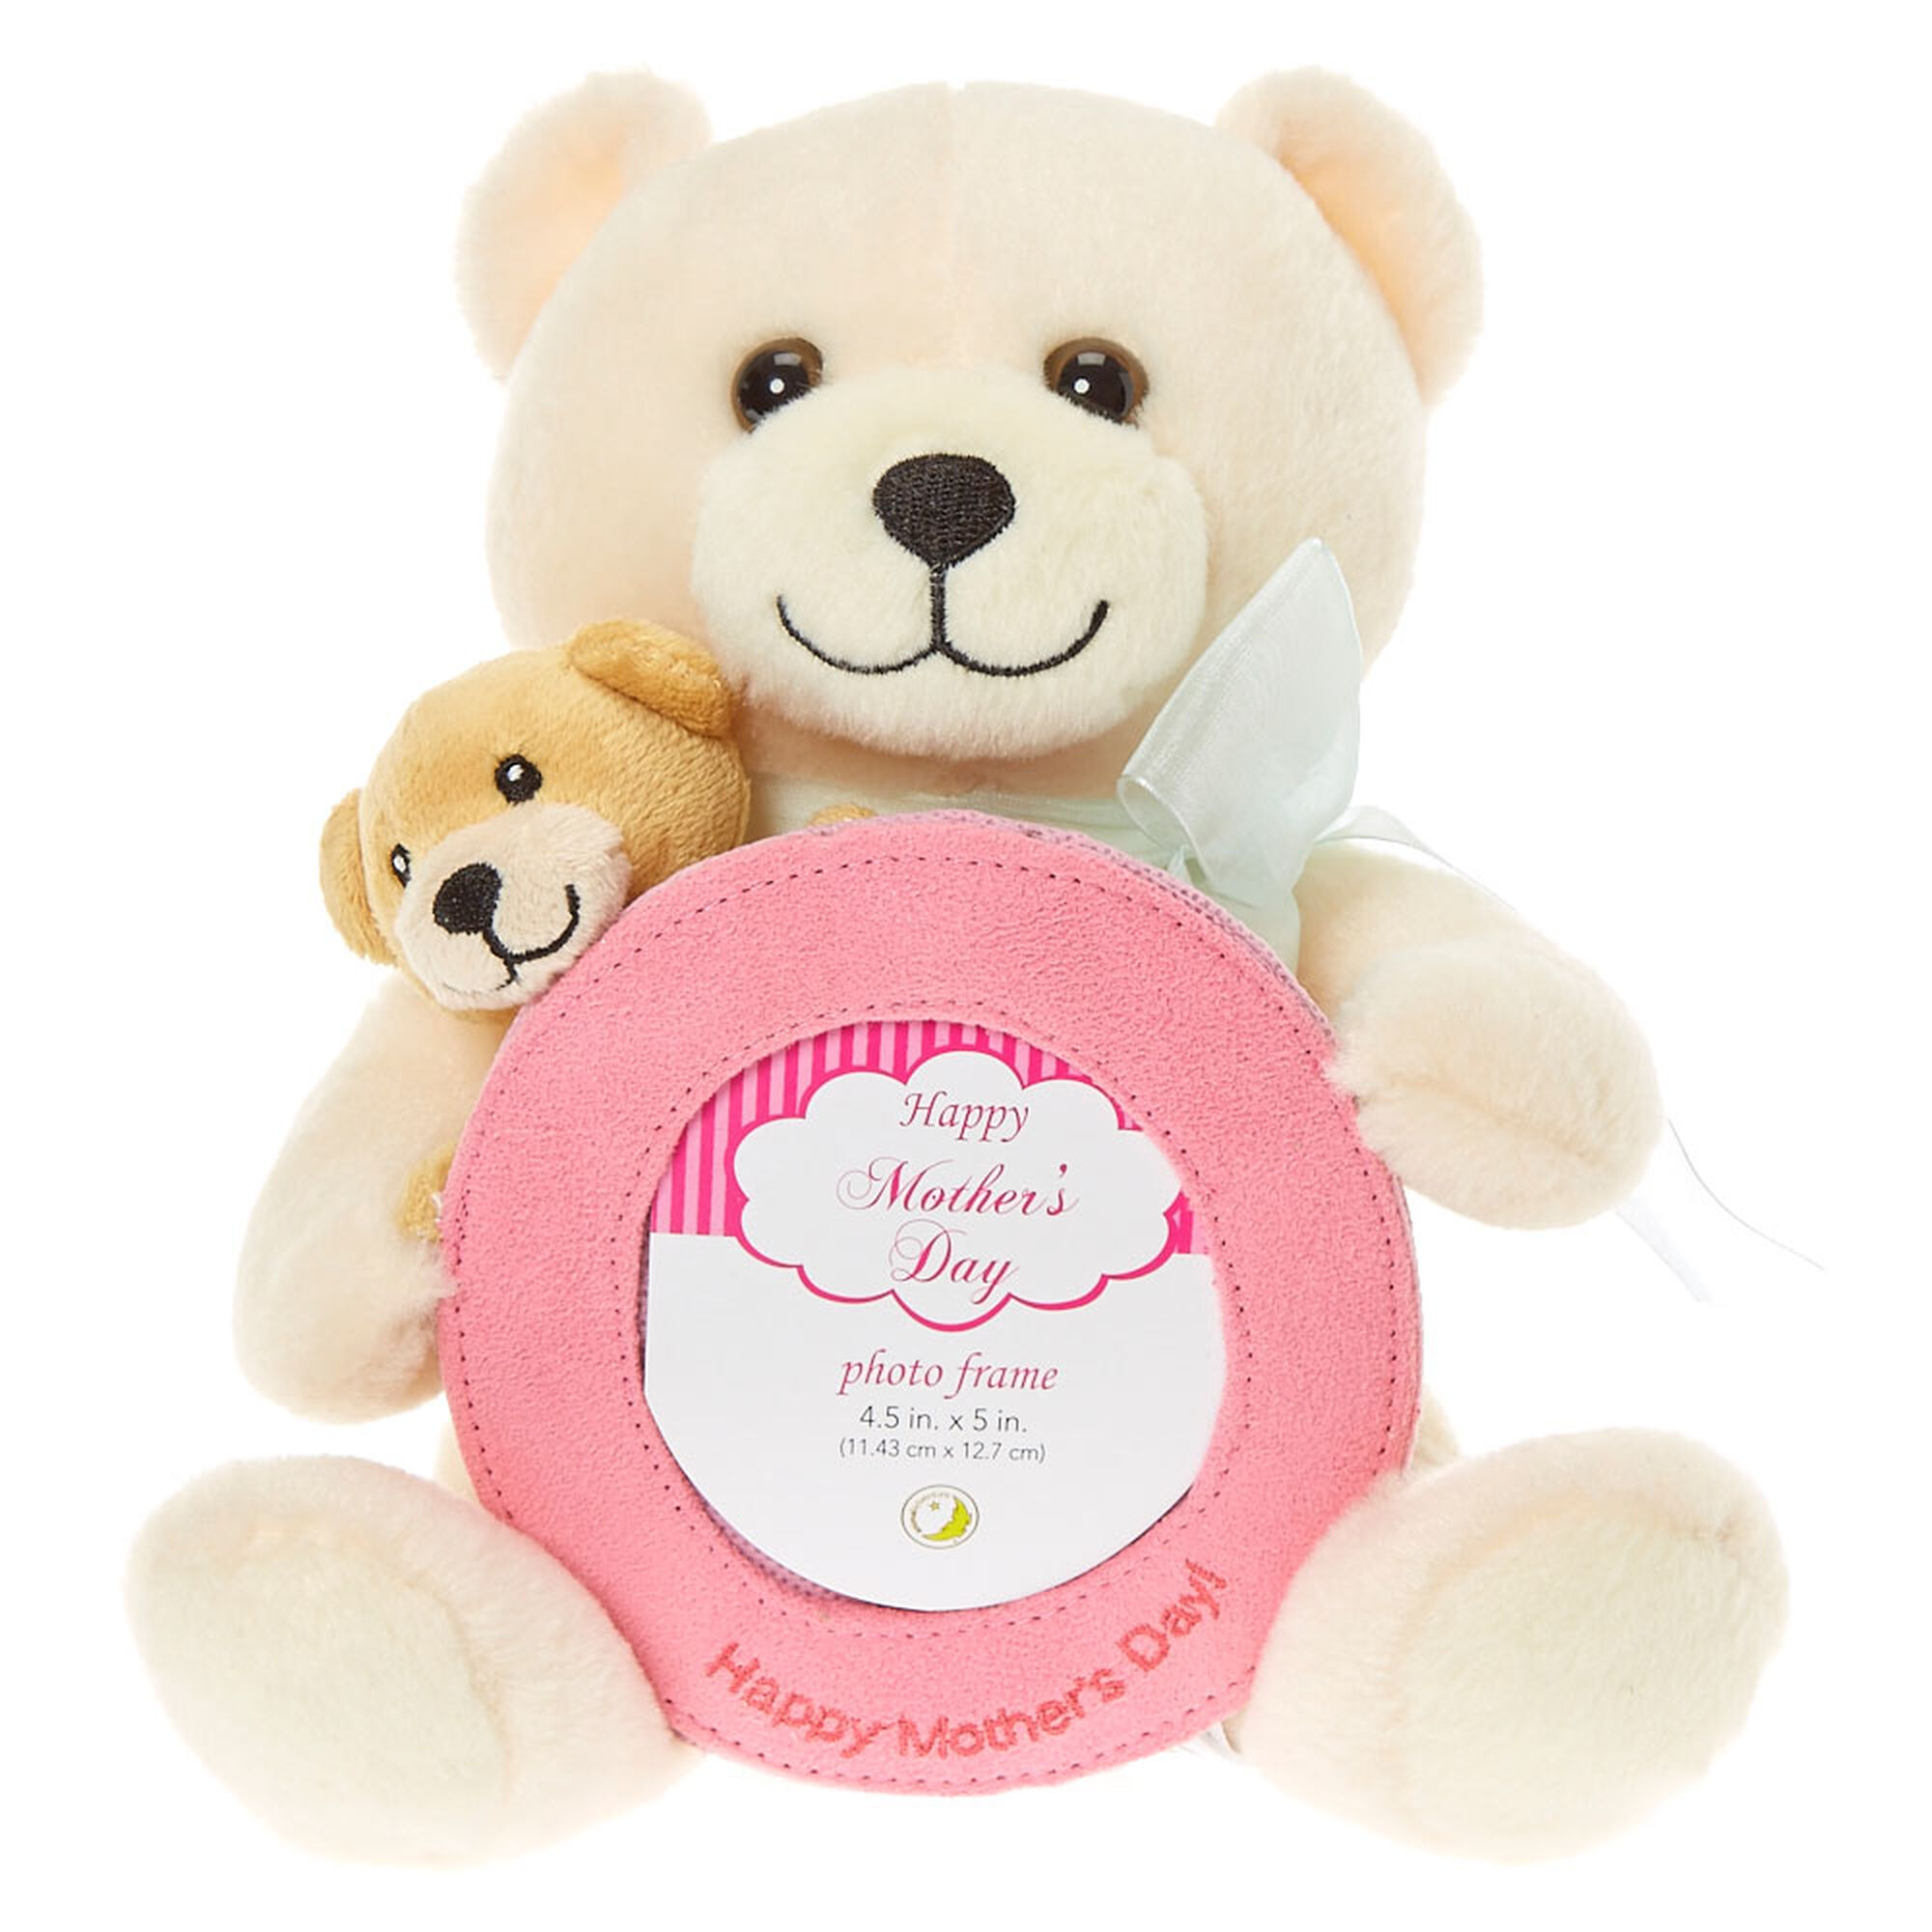 Happy Mother\'s Day Teddy Bear Photo Frame | Claire\'s US